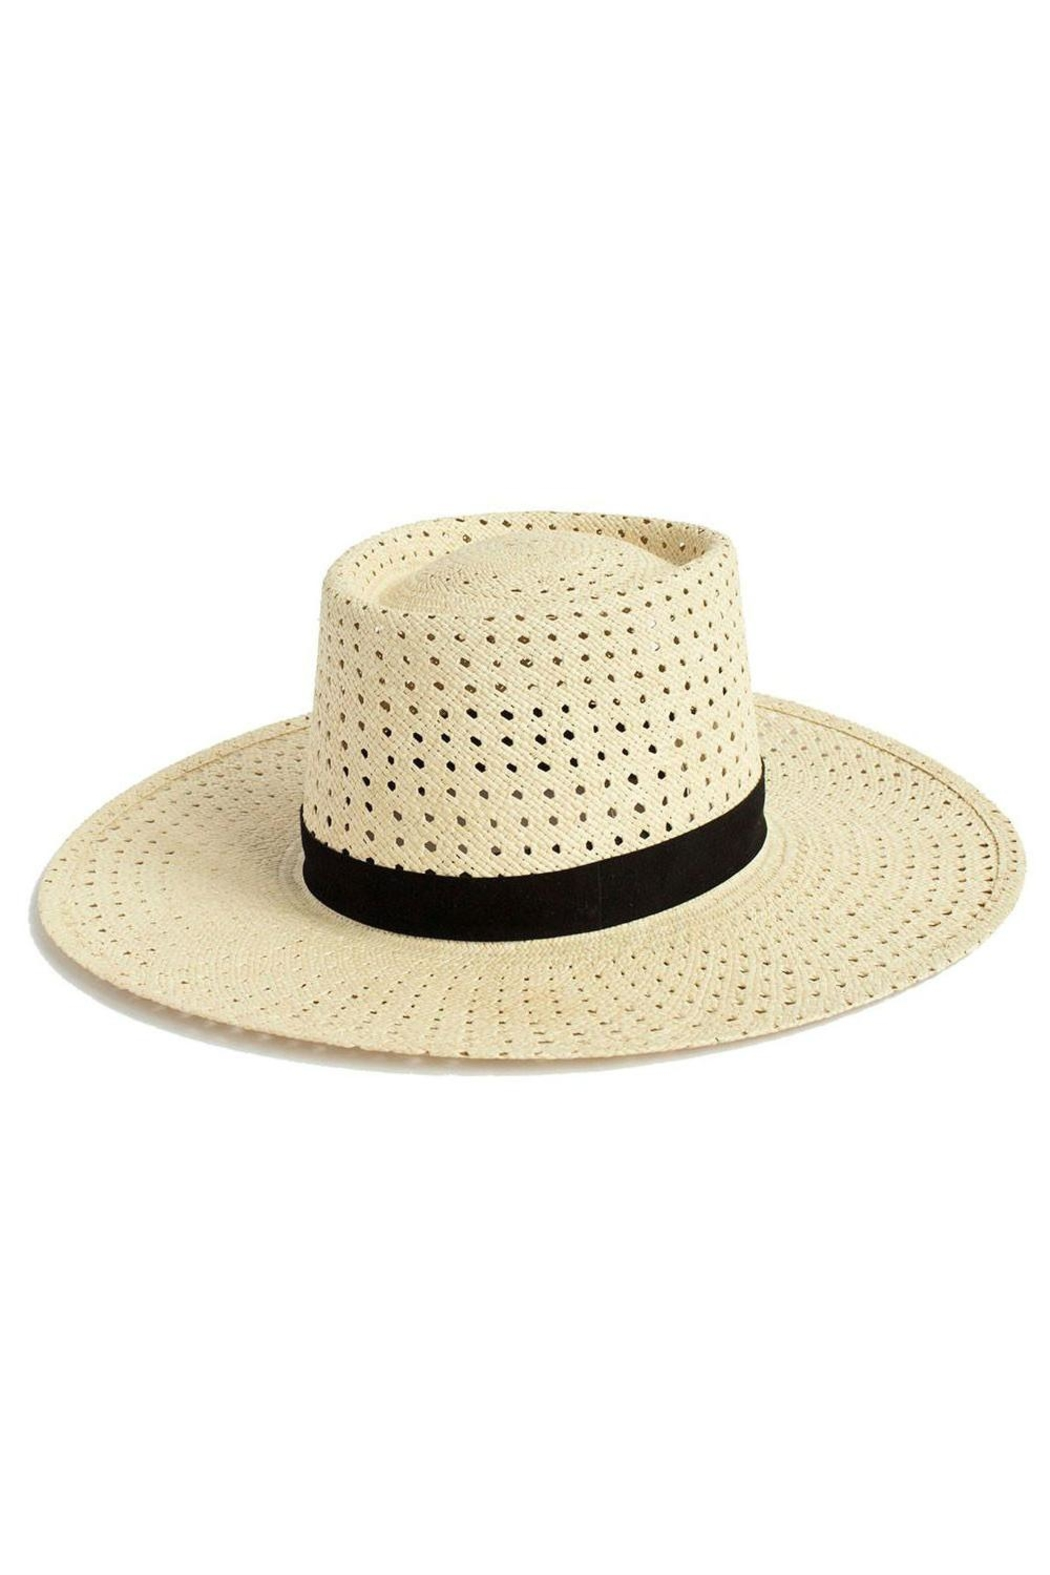 Janessa Leone Maxime Straw Hat - Front Cropped Image